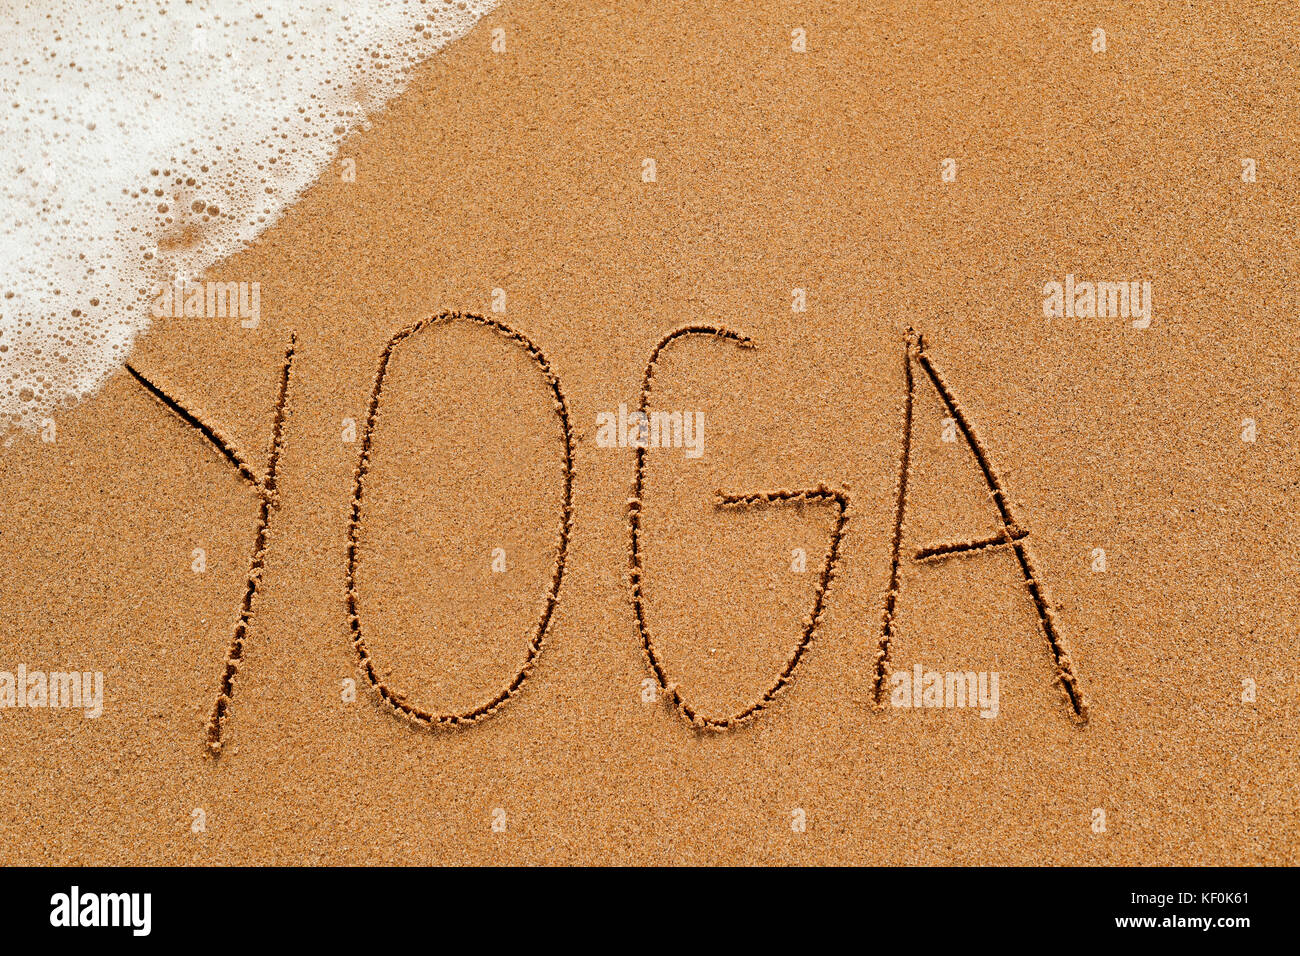 the word yoga written in the sand of a beach, with sea foam in a corner - Stock Image